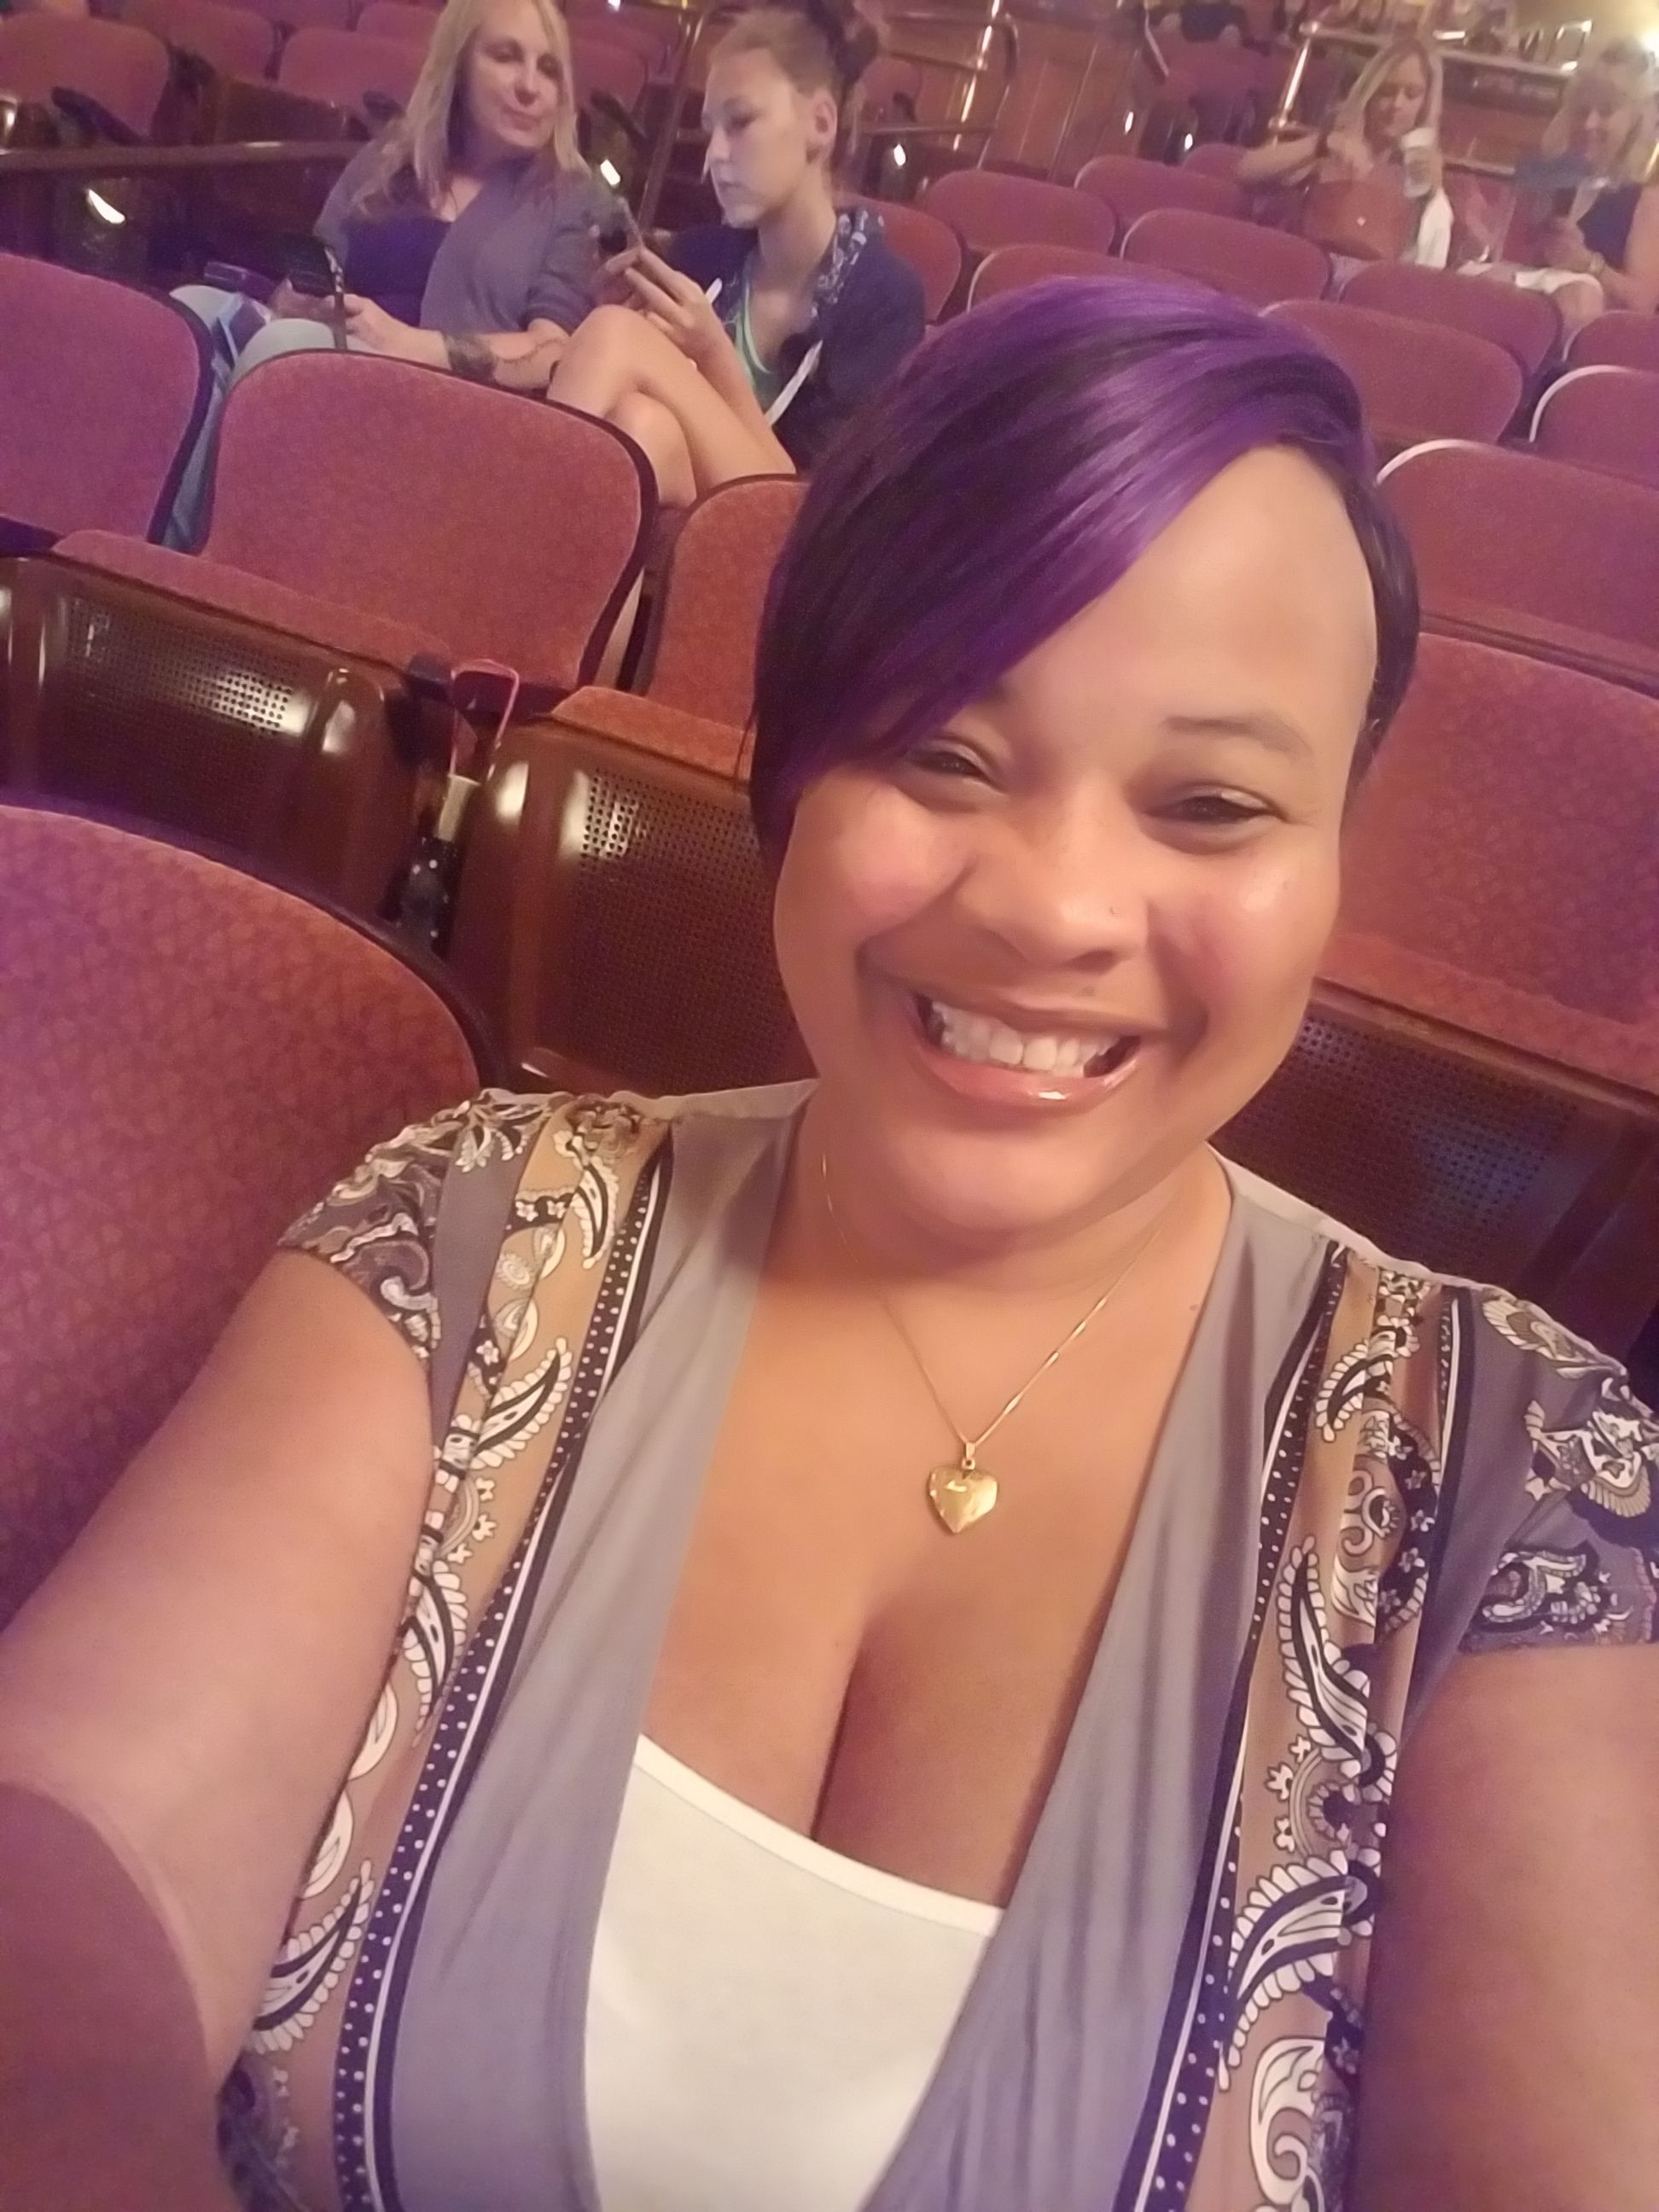 Pittsburgh adult classifieds